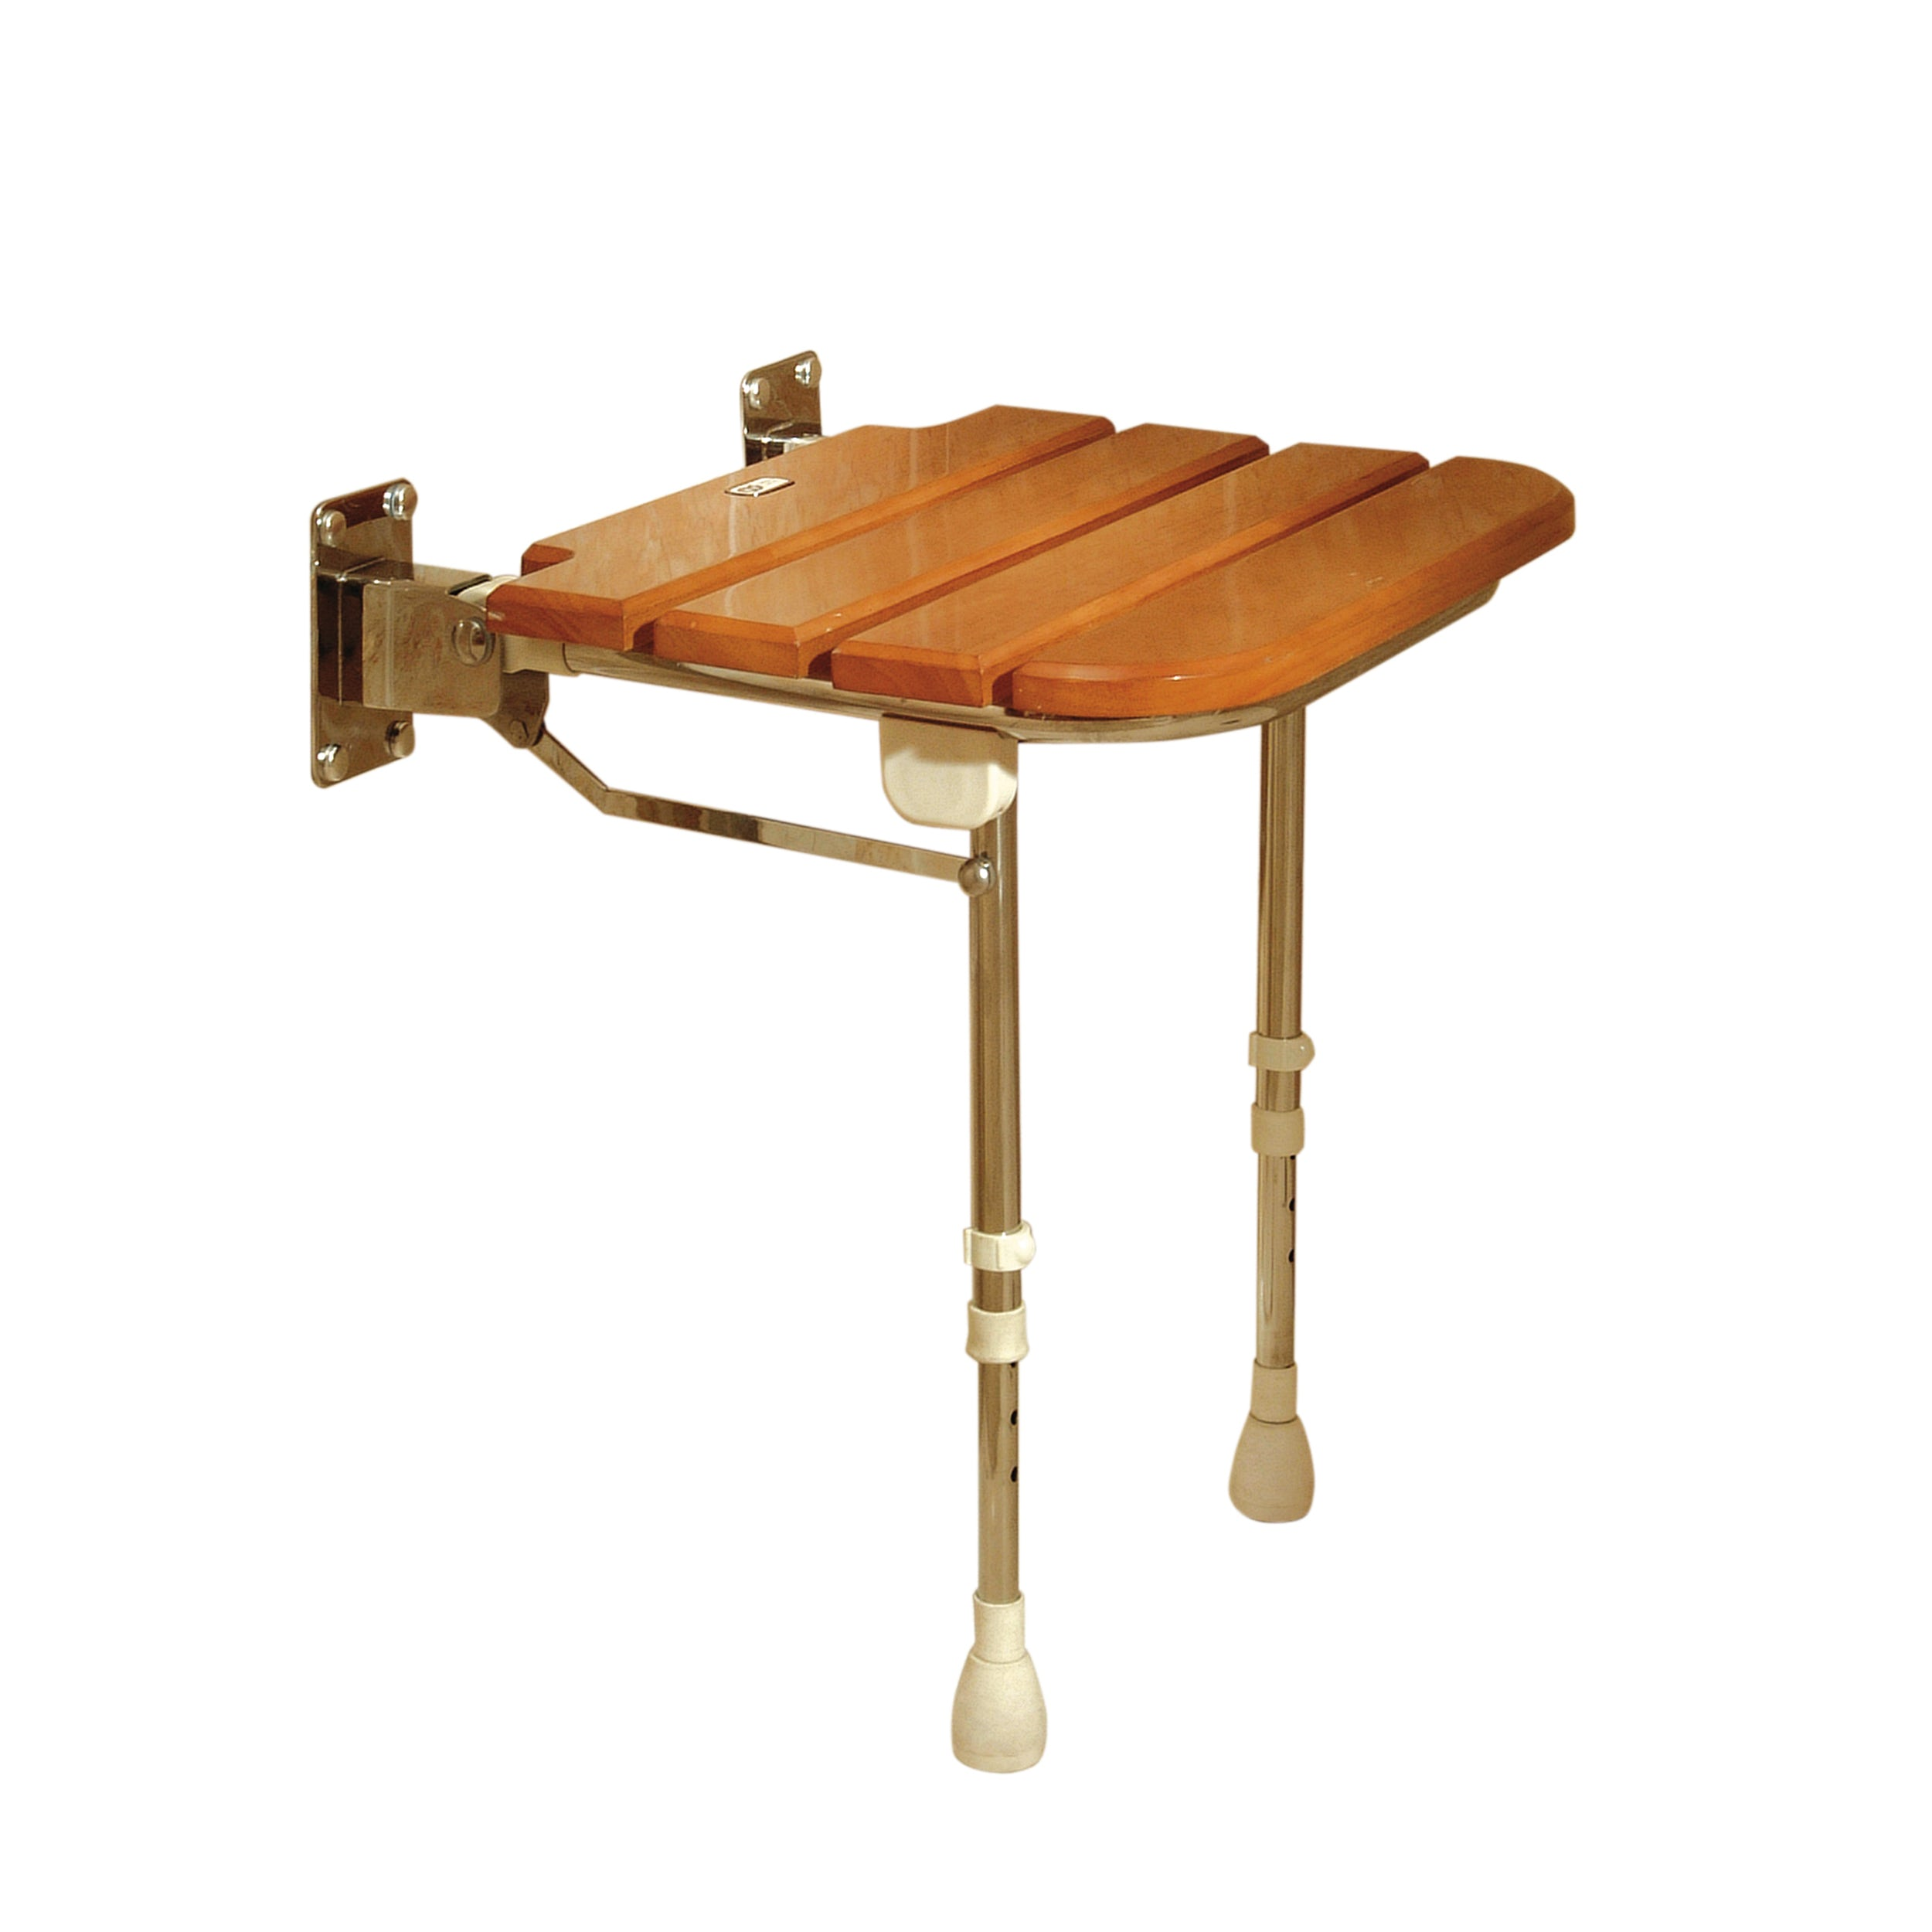 AKW Wooden folding shower seat - Sold by Victoria Plum